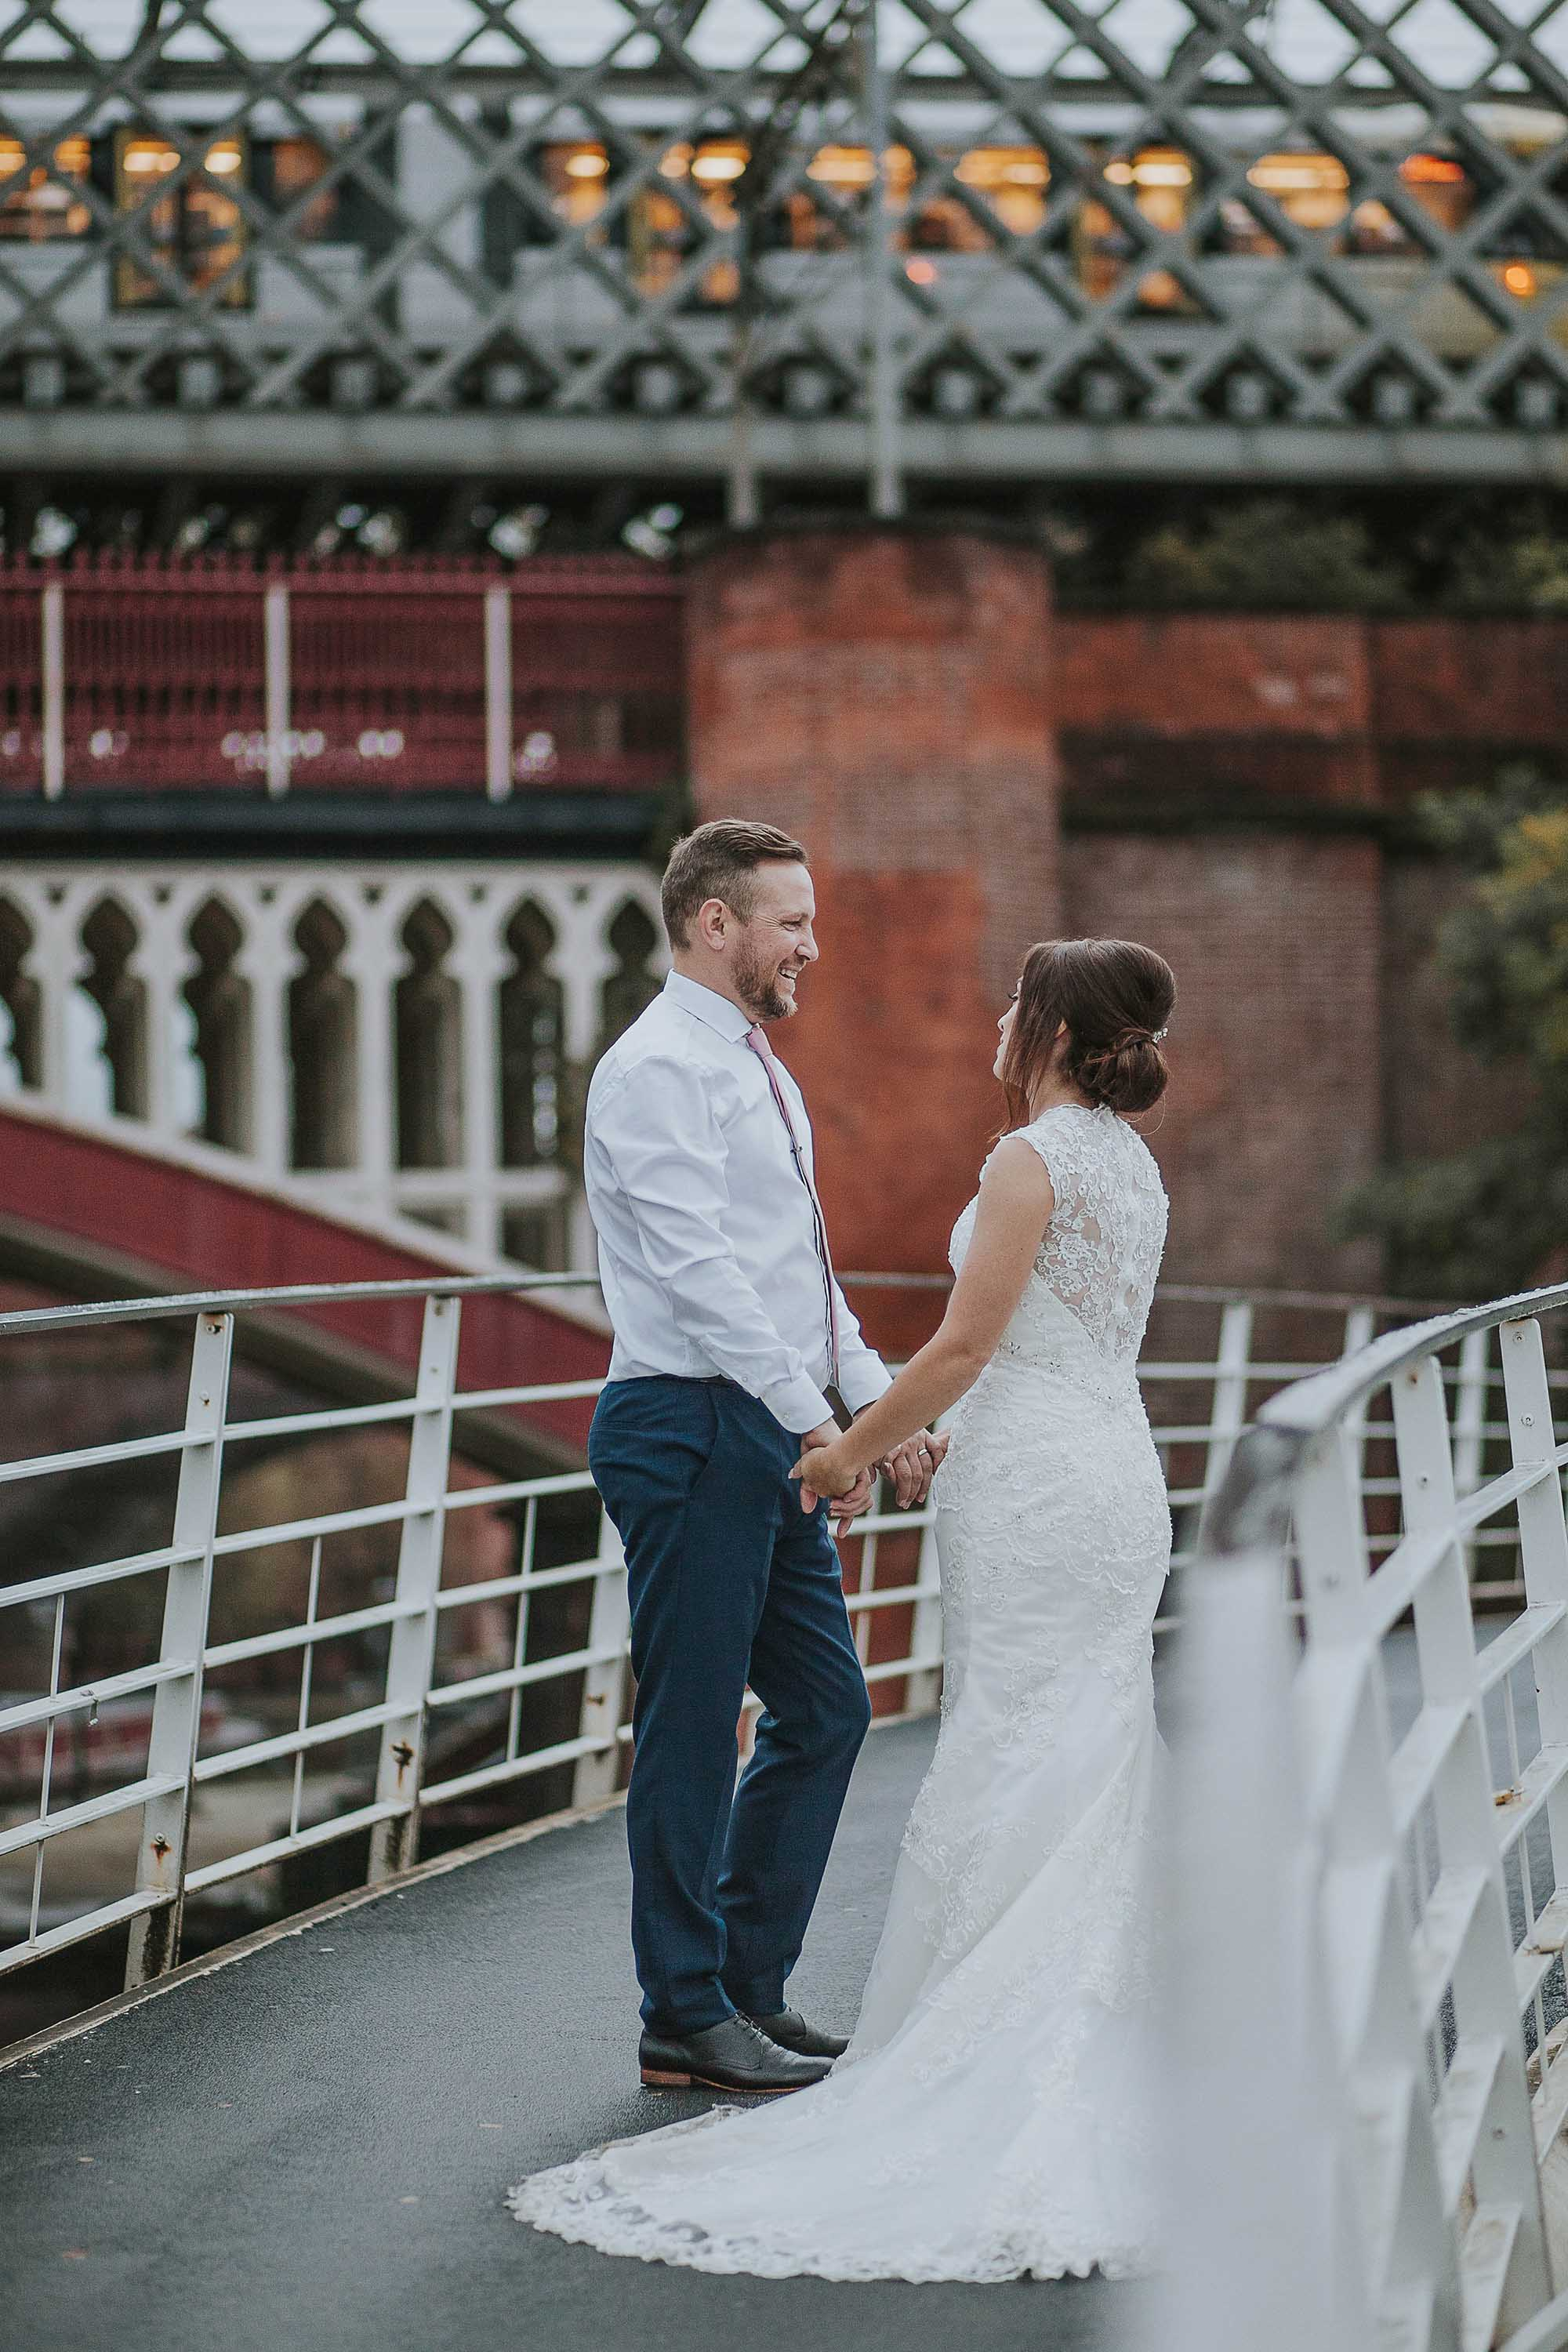 Manchester wedding at The Castlefield Rooms